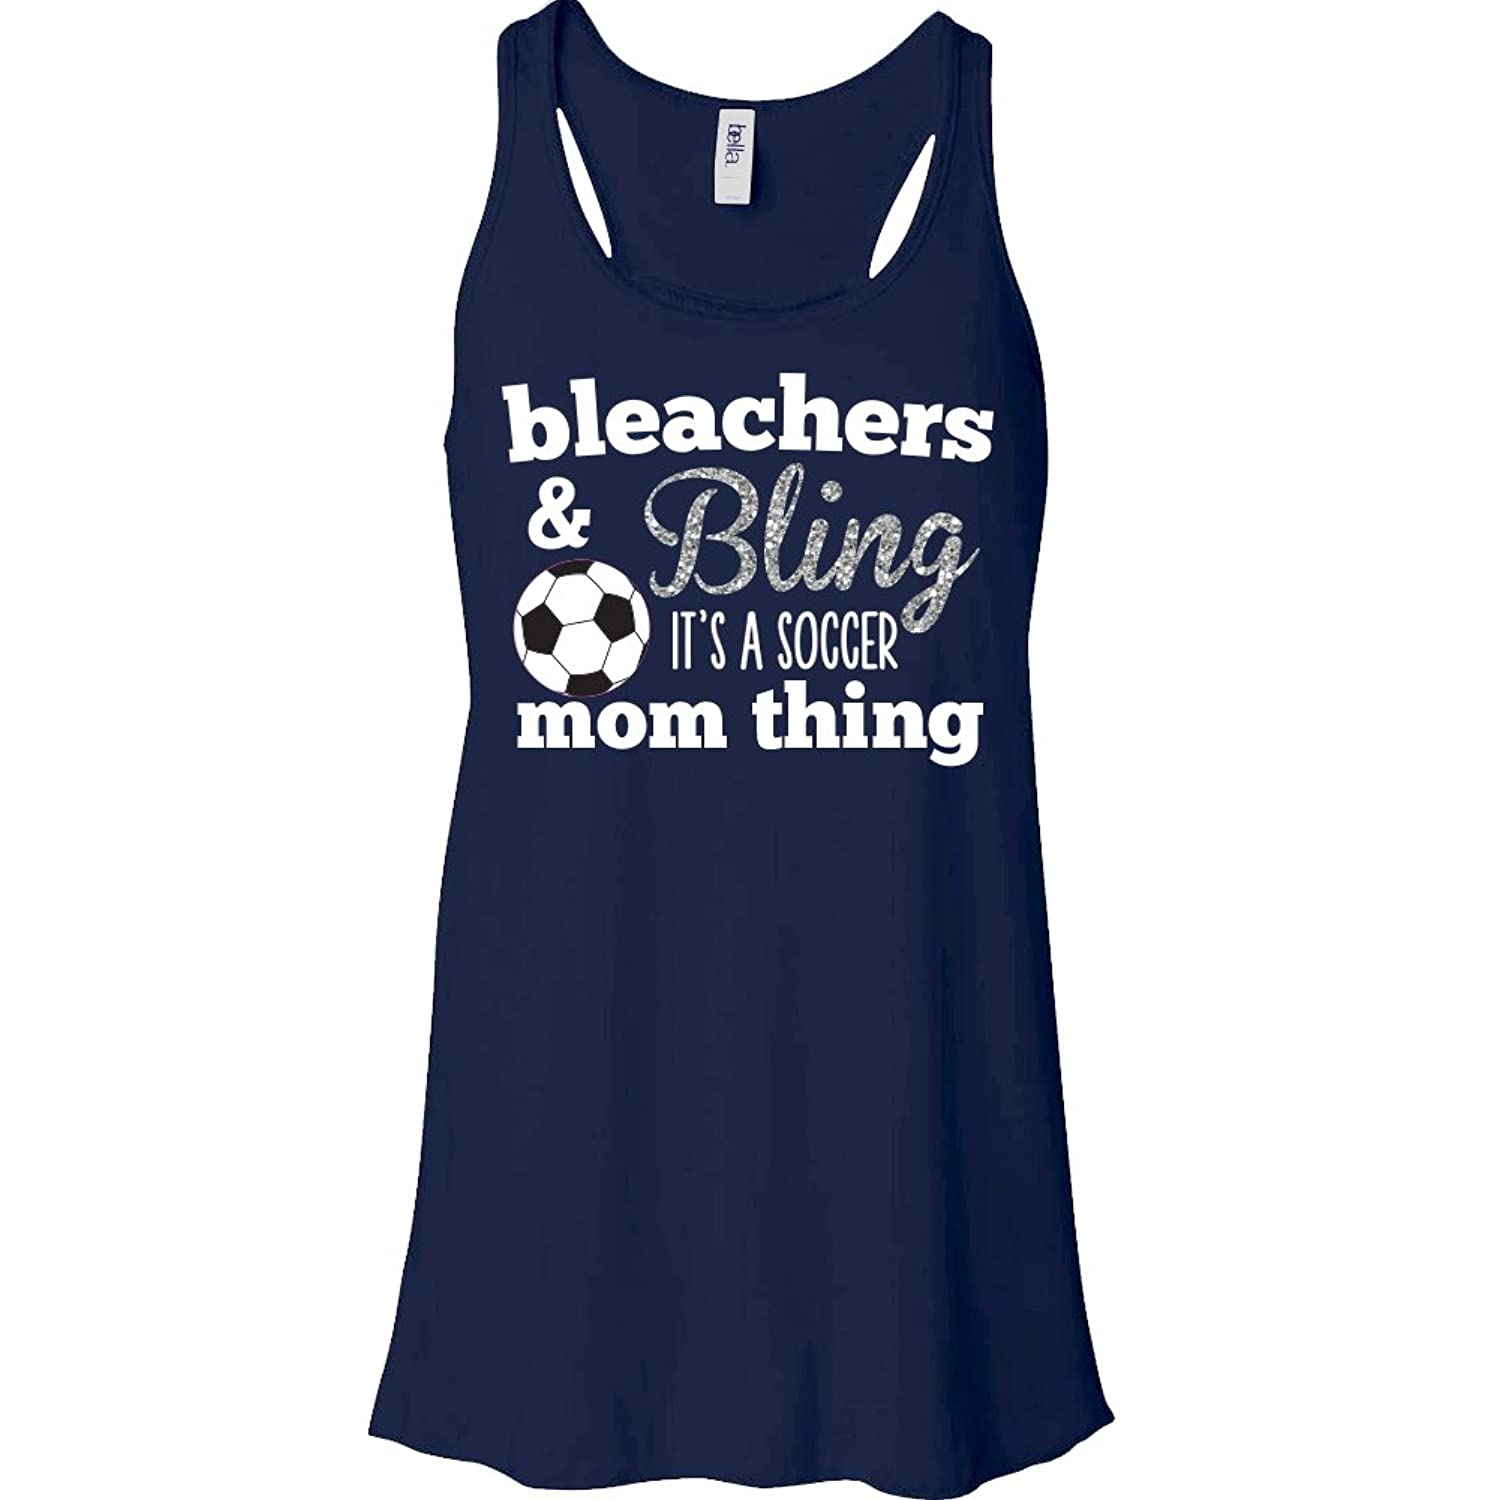 Bleachers & Bling It's A SOCCER Mom Thing Sparkly Tank - Navy